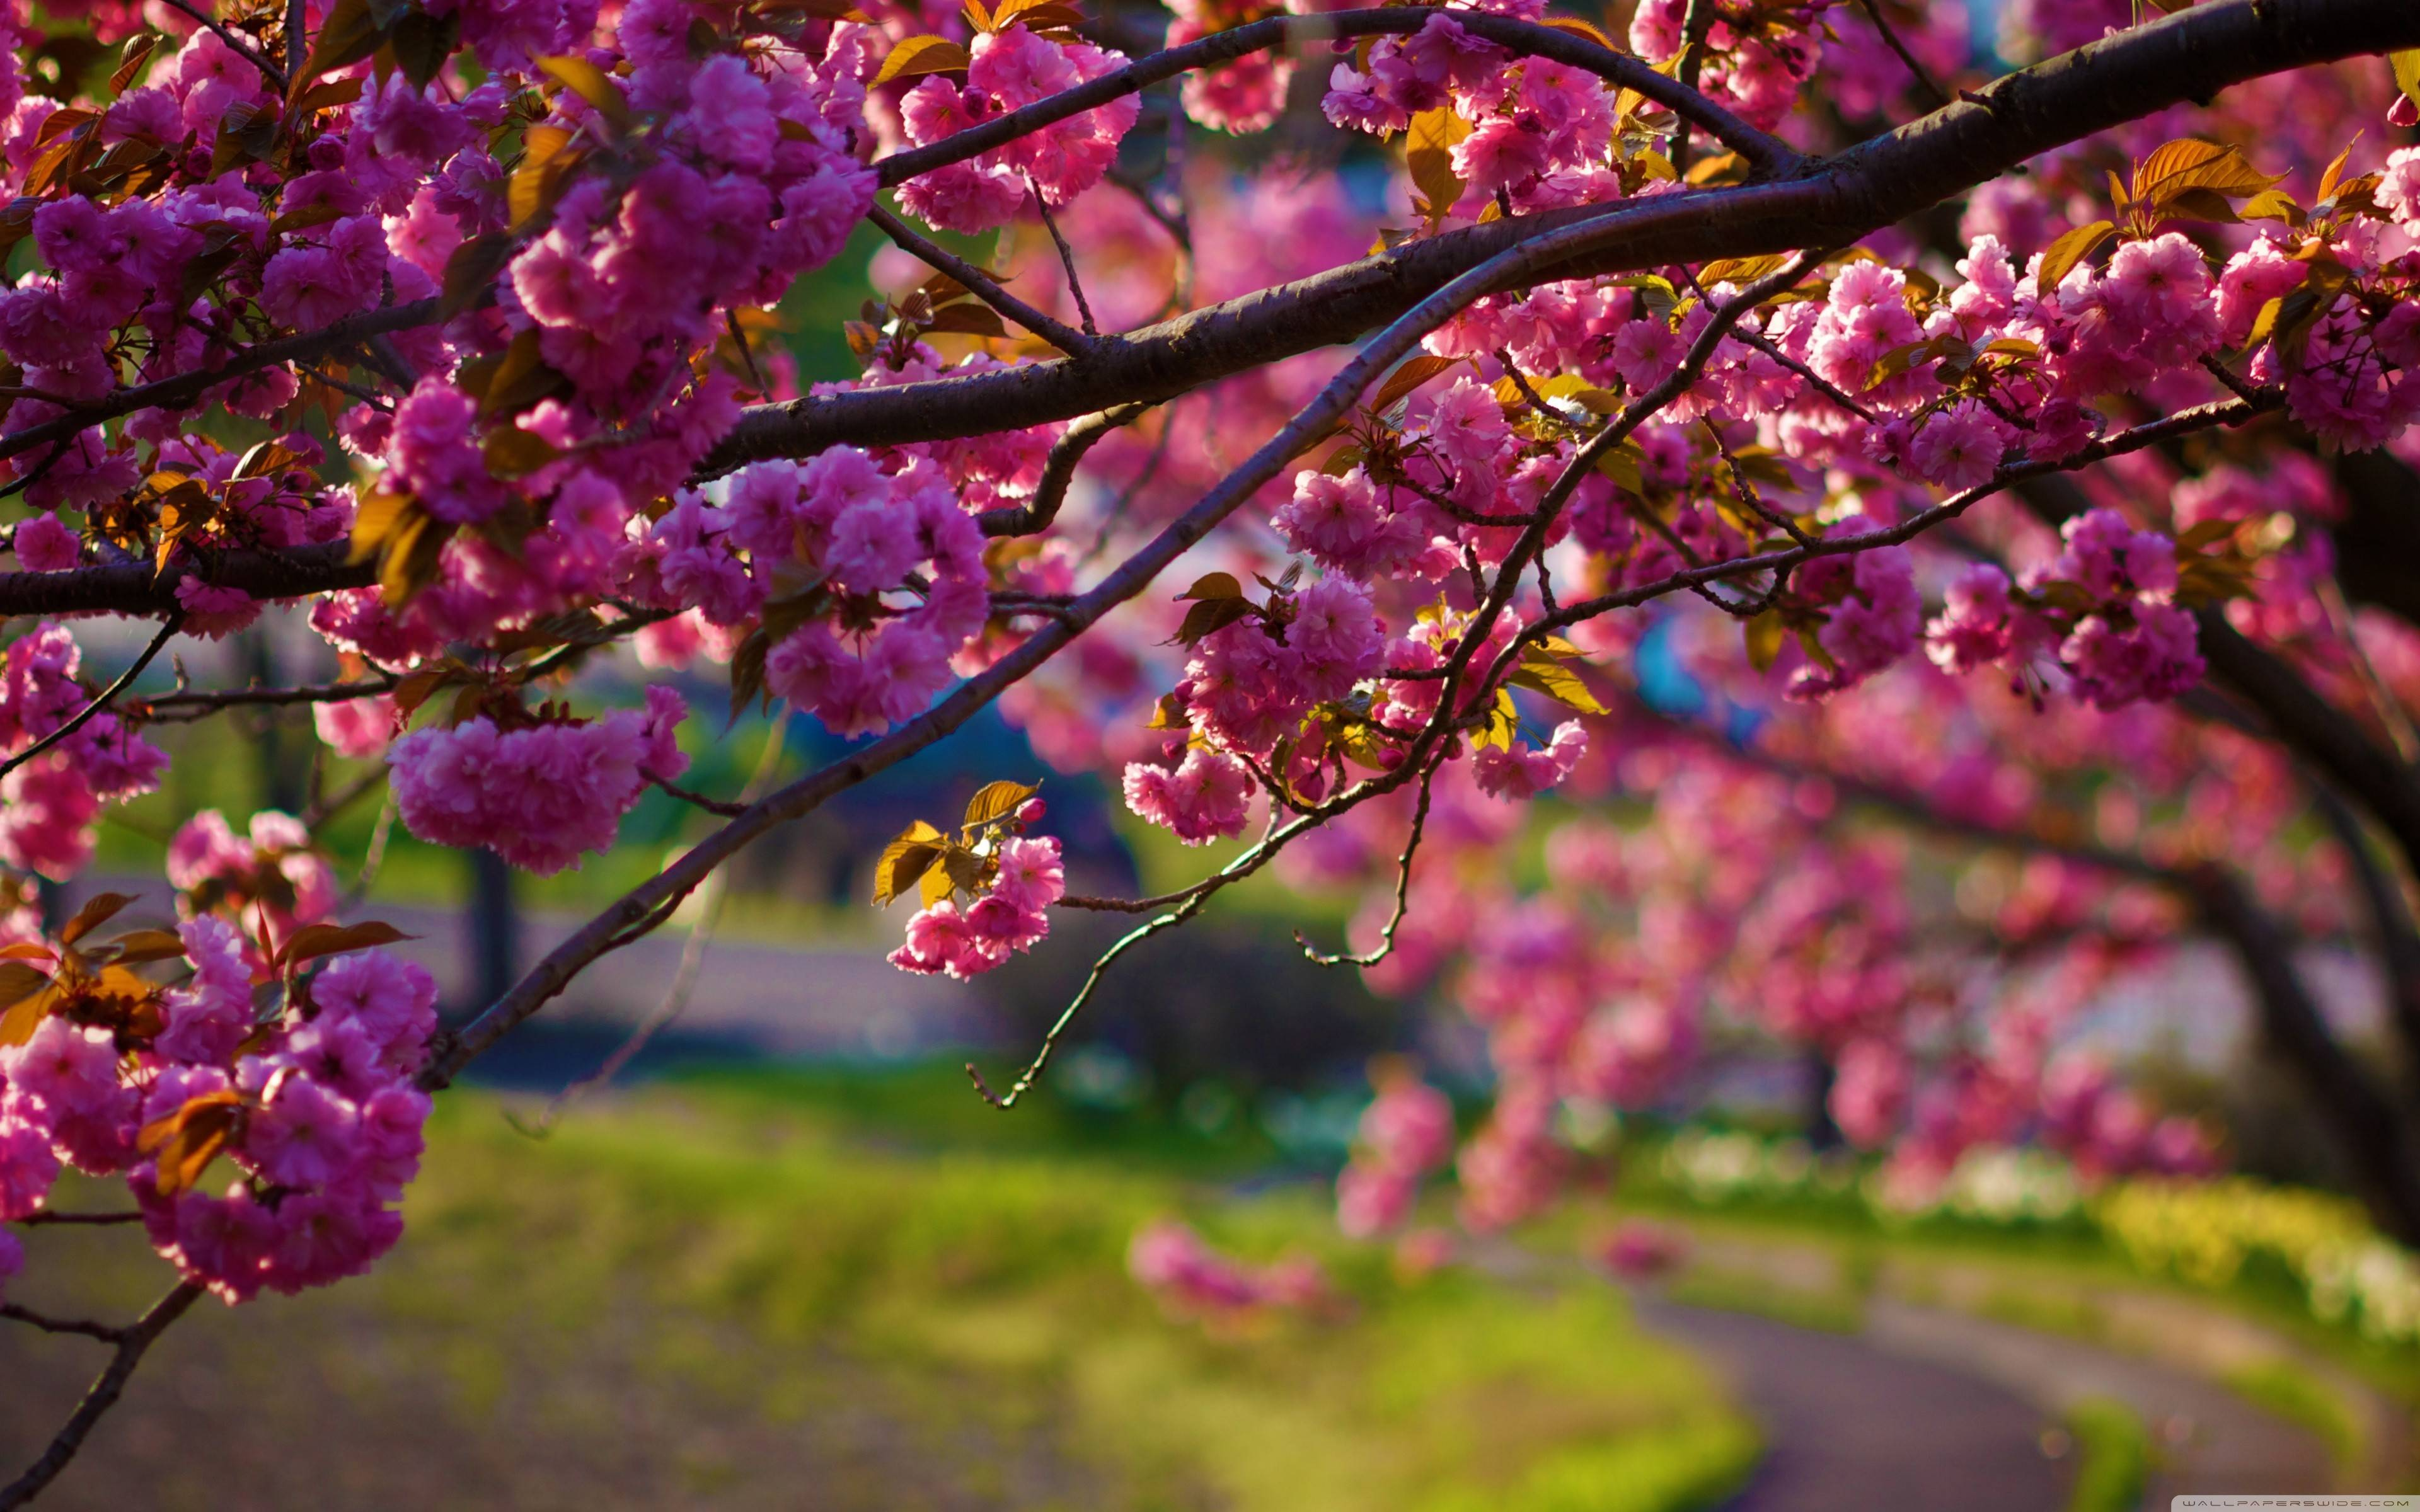 Spring Nature Wallpapers 3840x2400